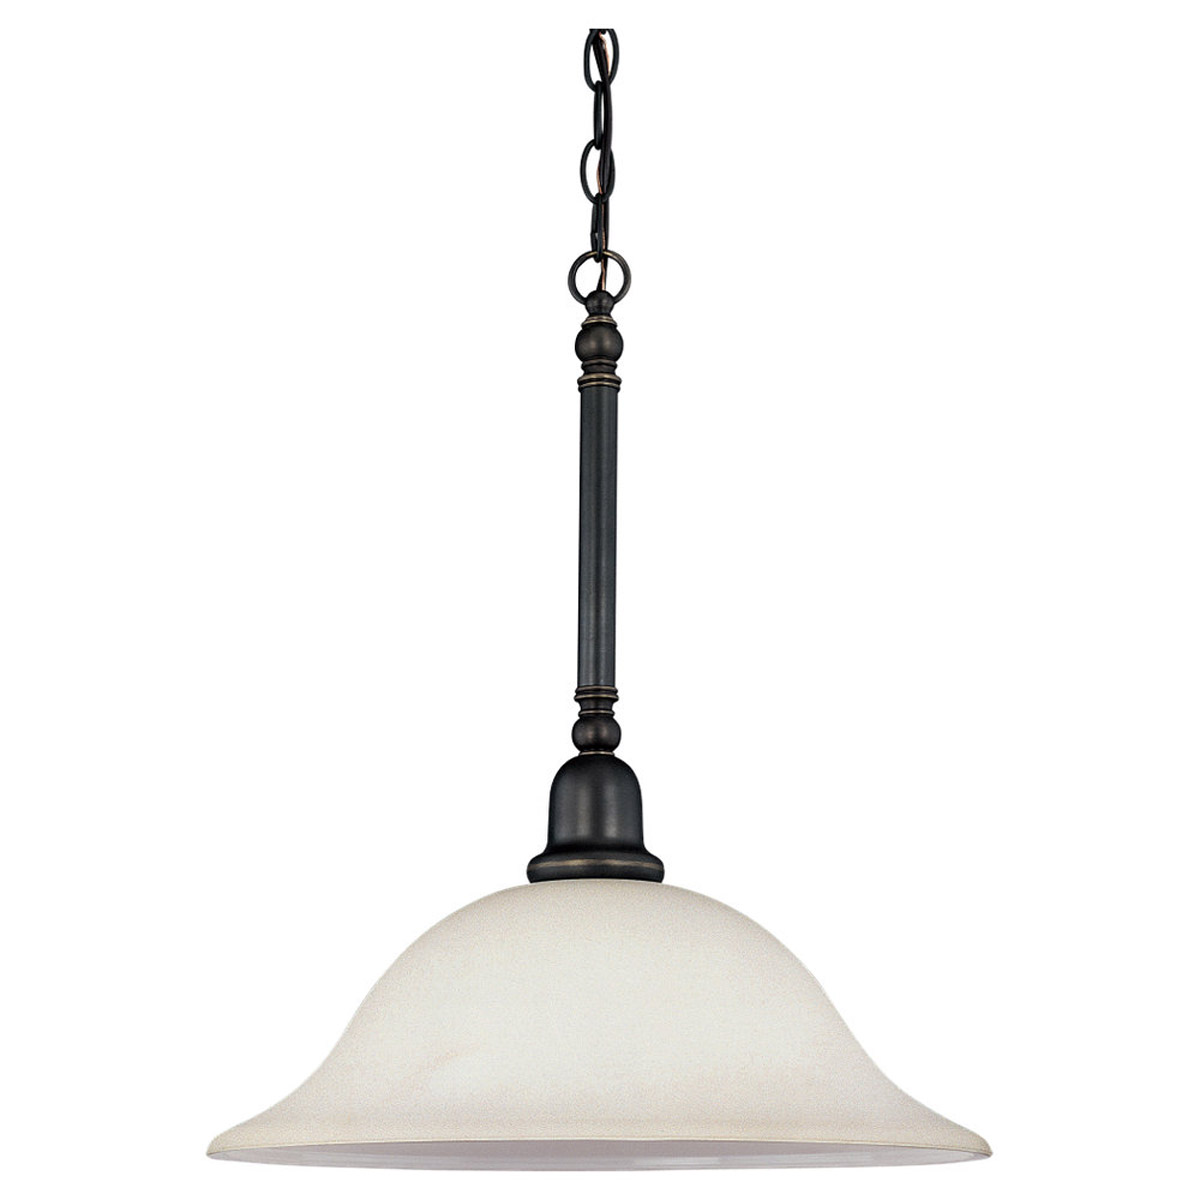 Sea Gull Lighting Sussex 1 Light Pendant in Heirloom Bronze 66060-782